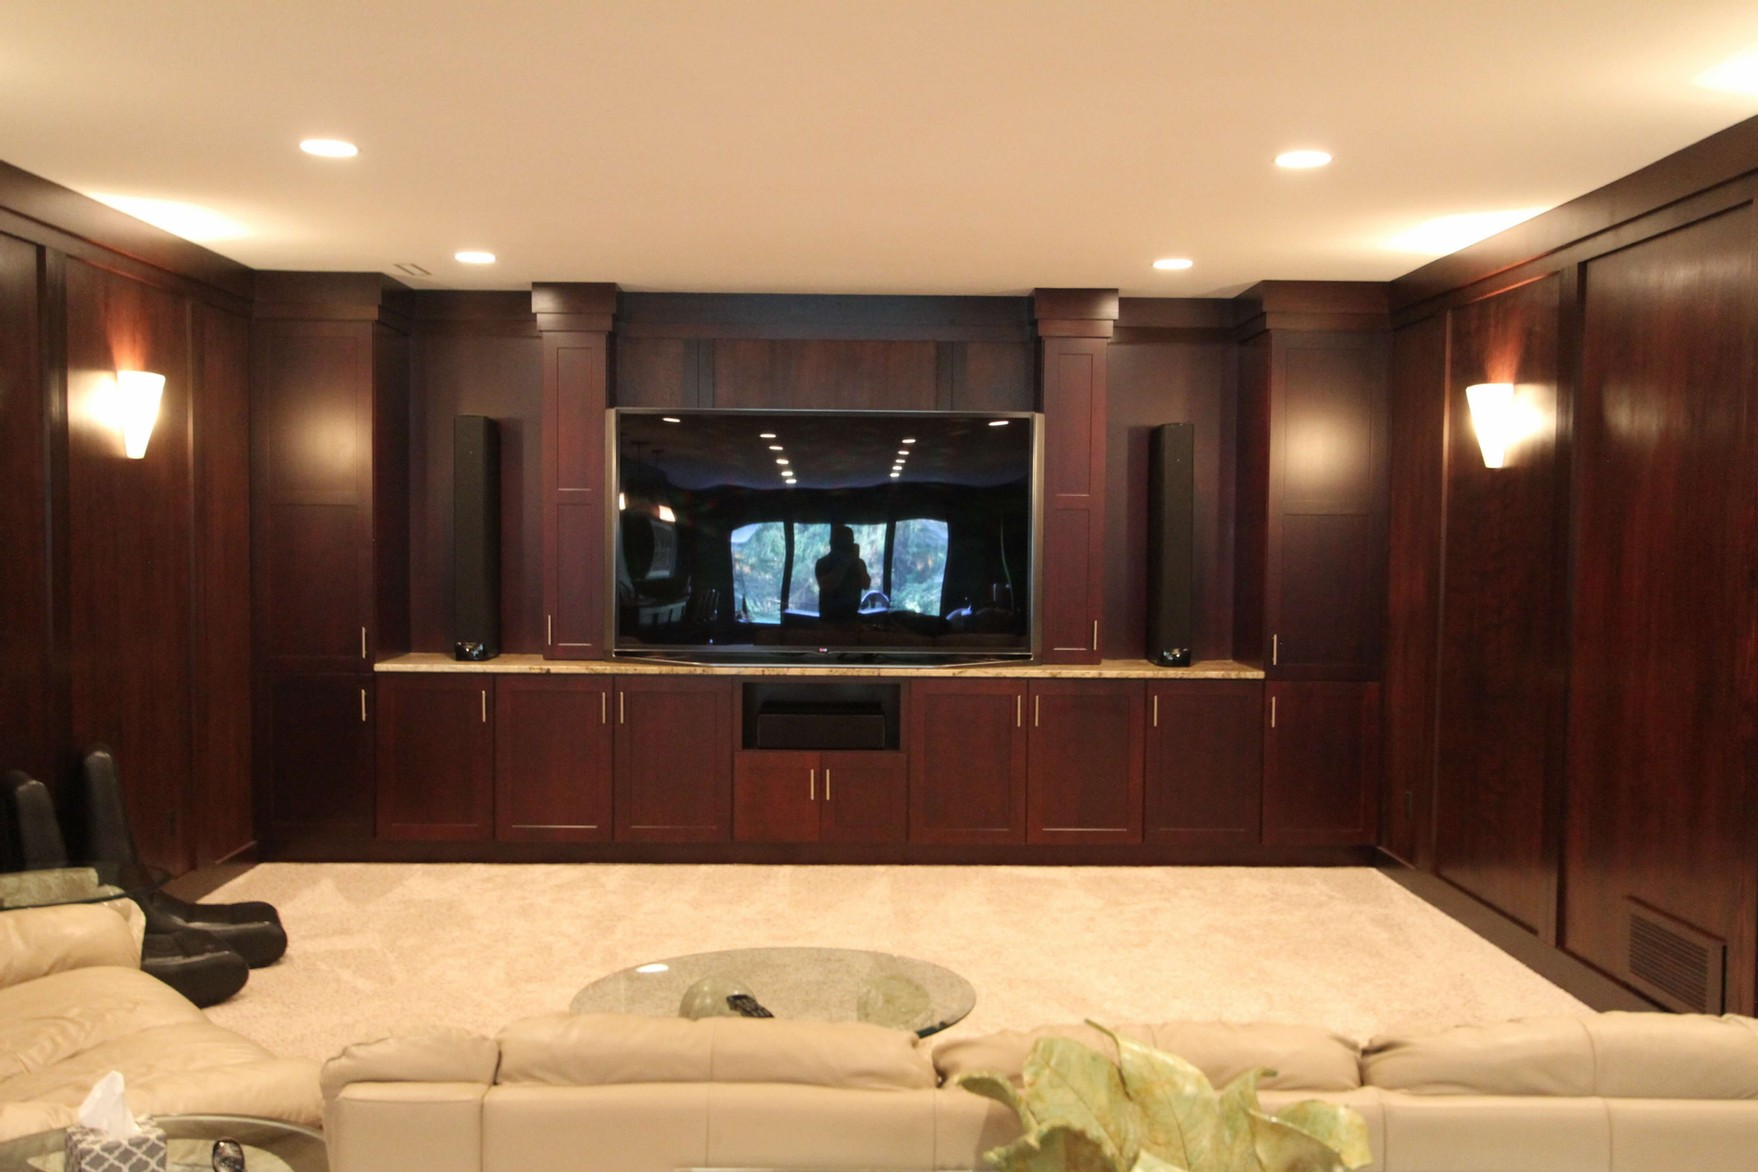 Awesome custom home theater